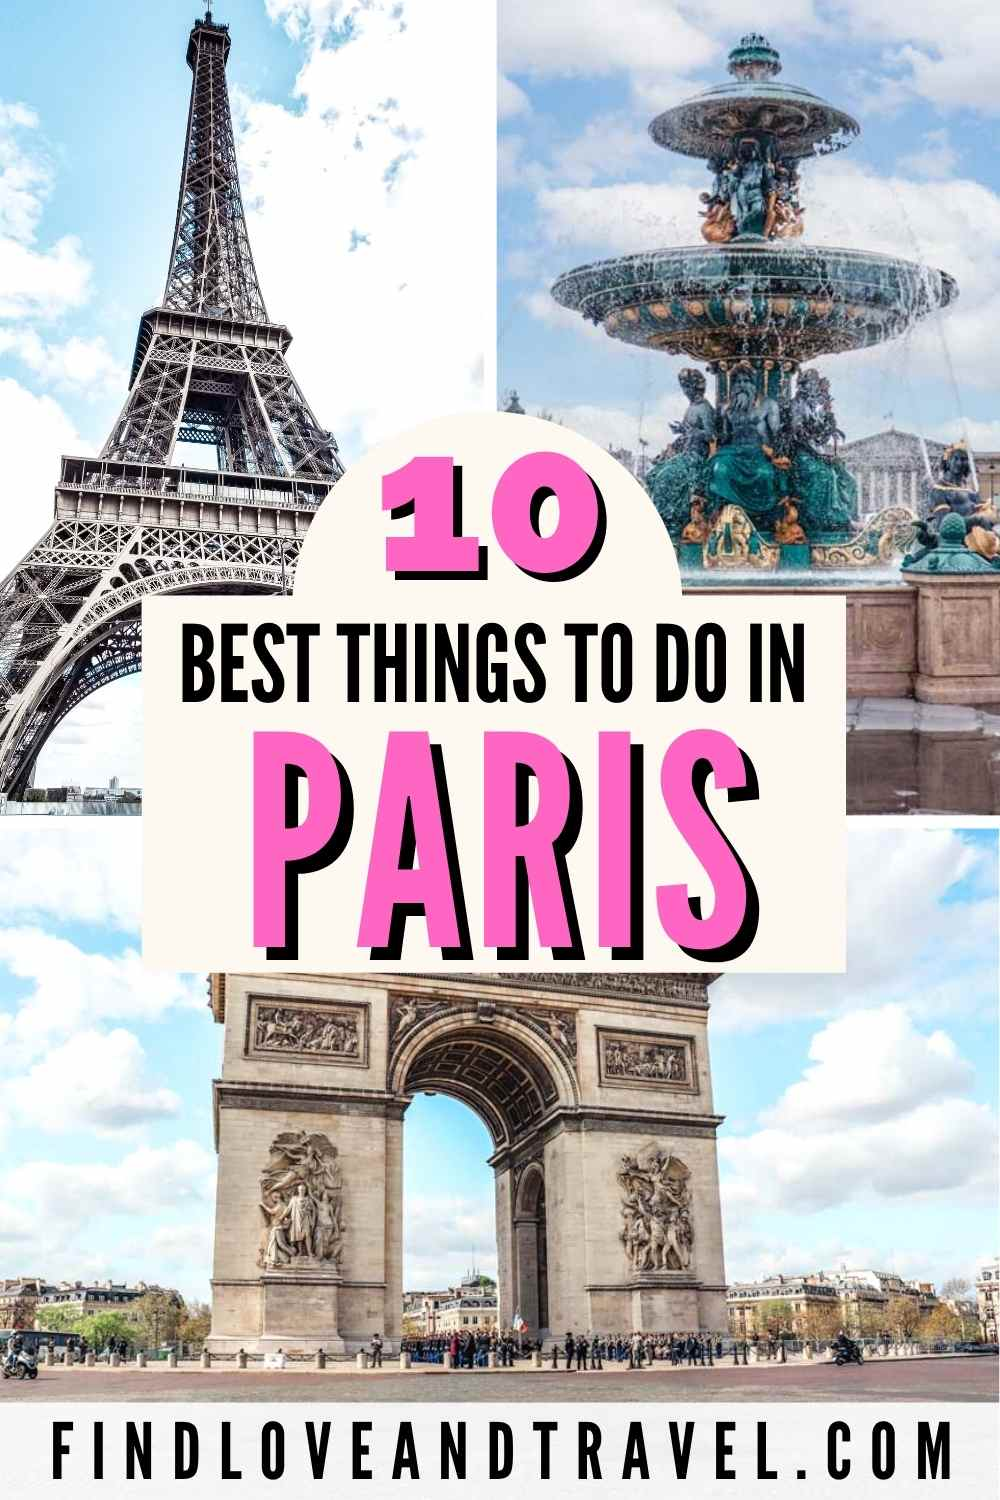 Paris top 10 attractions you must-see while in Paris, France.